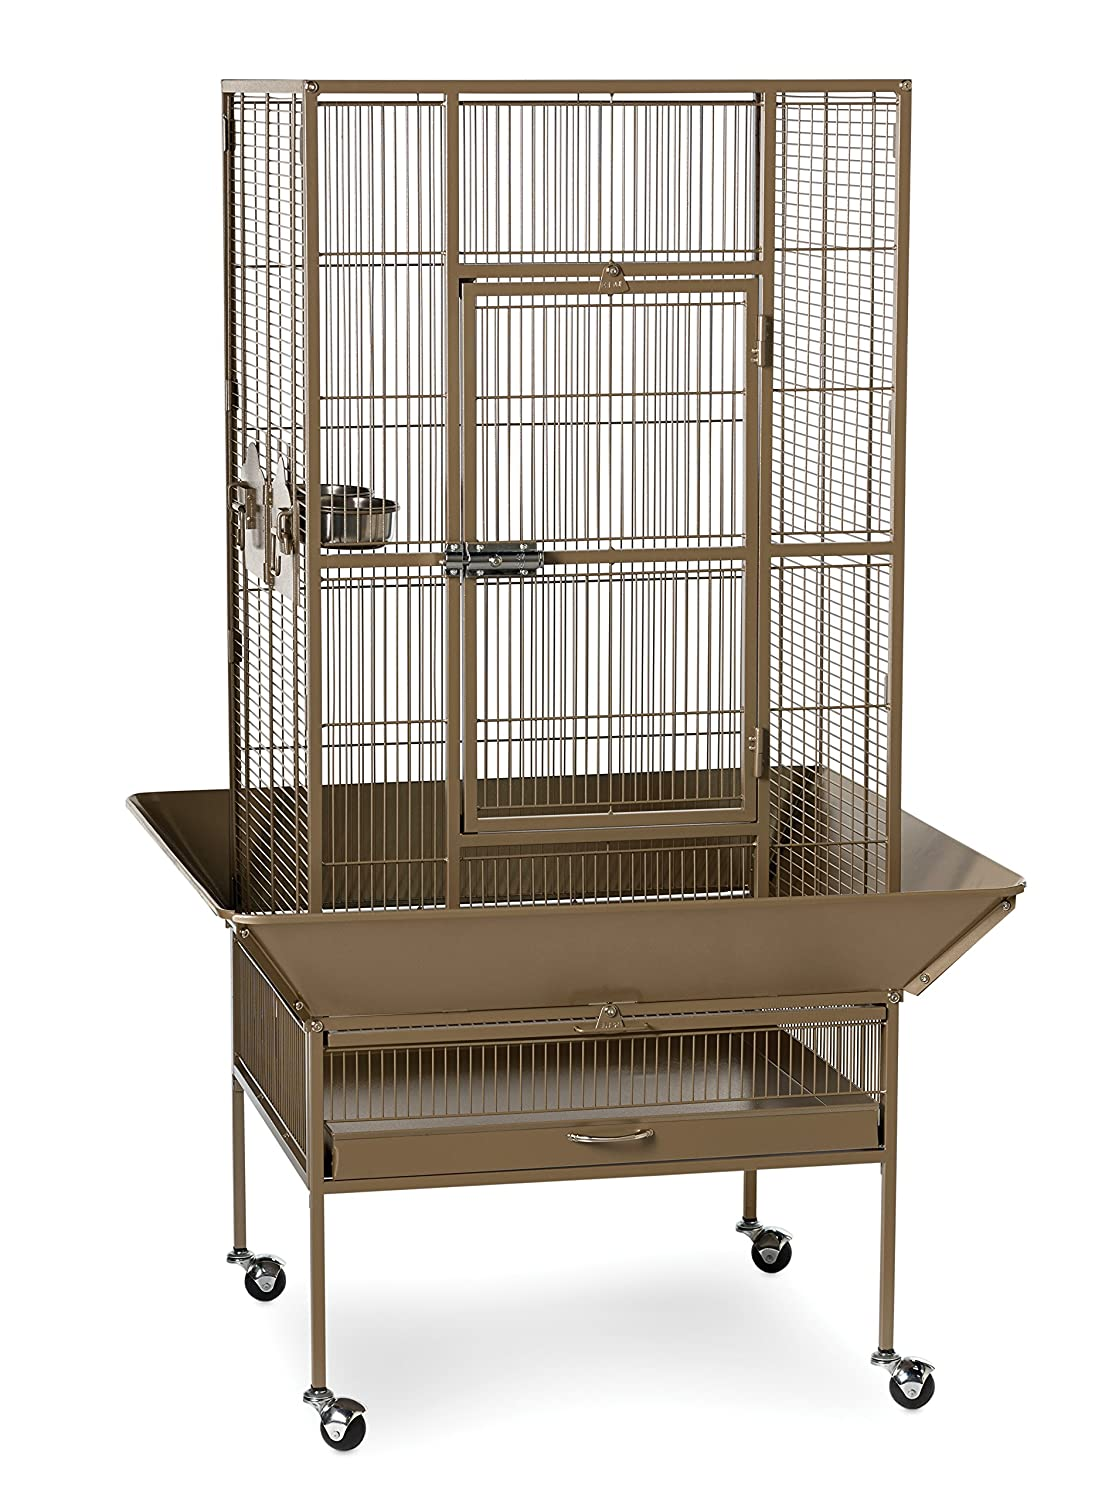 Prevue Pet Products Park Plaza Large Bird Cage Coco Brown 3352COCO